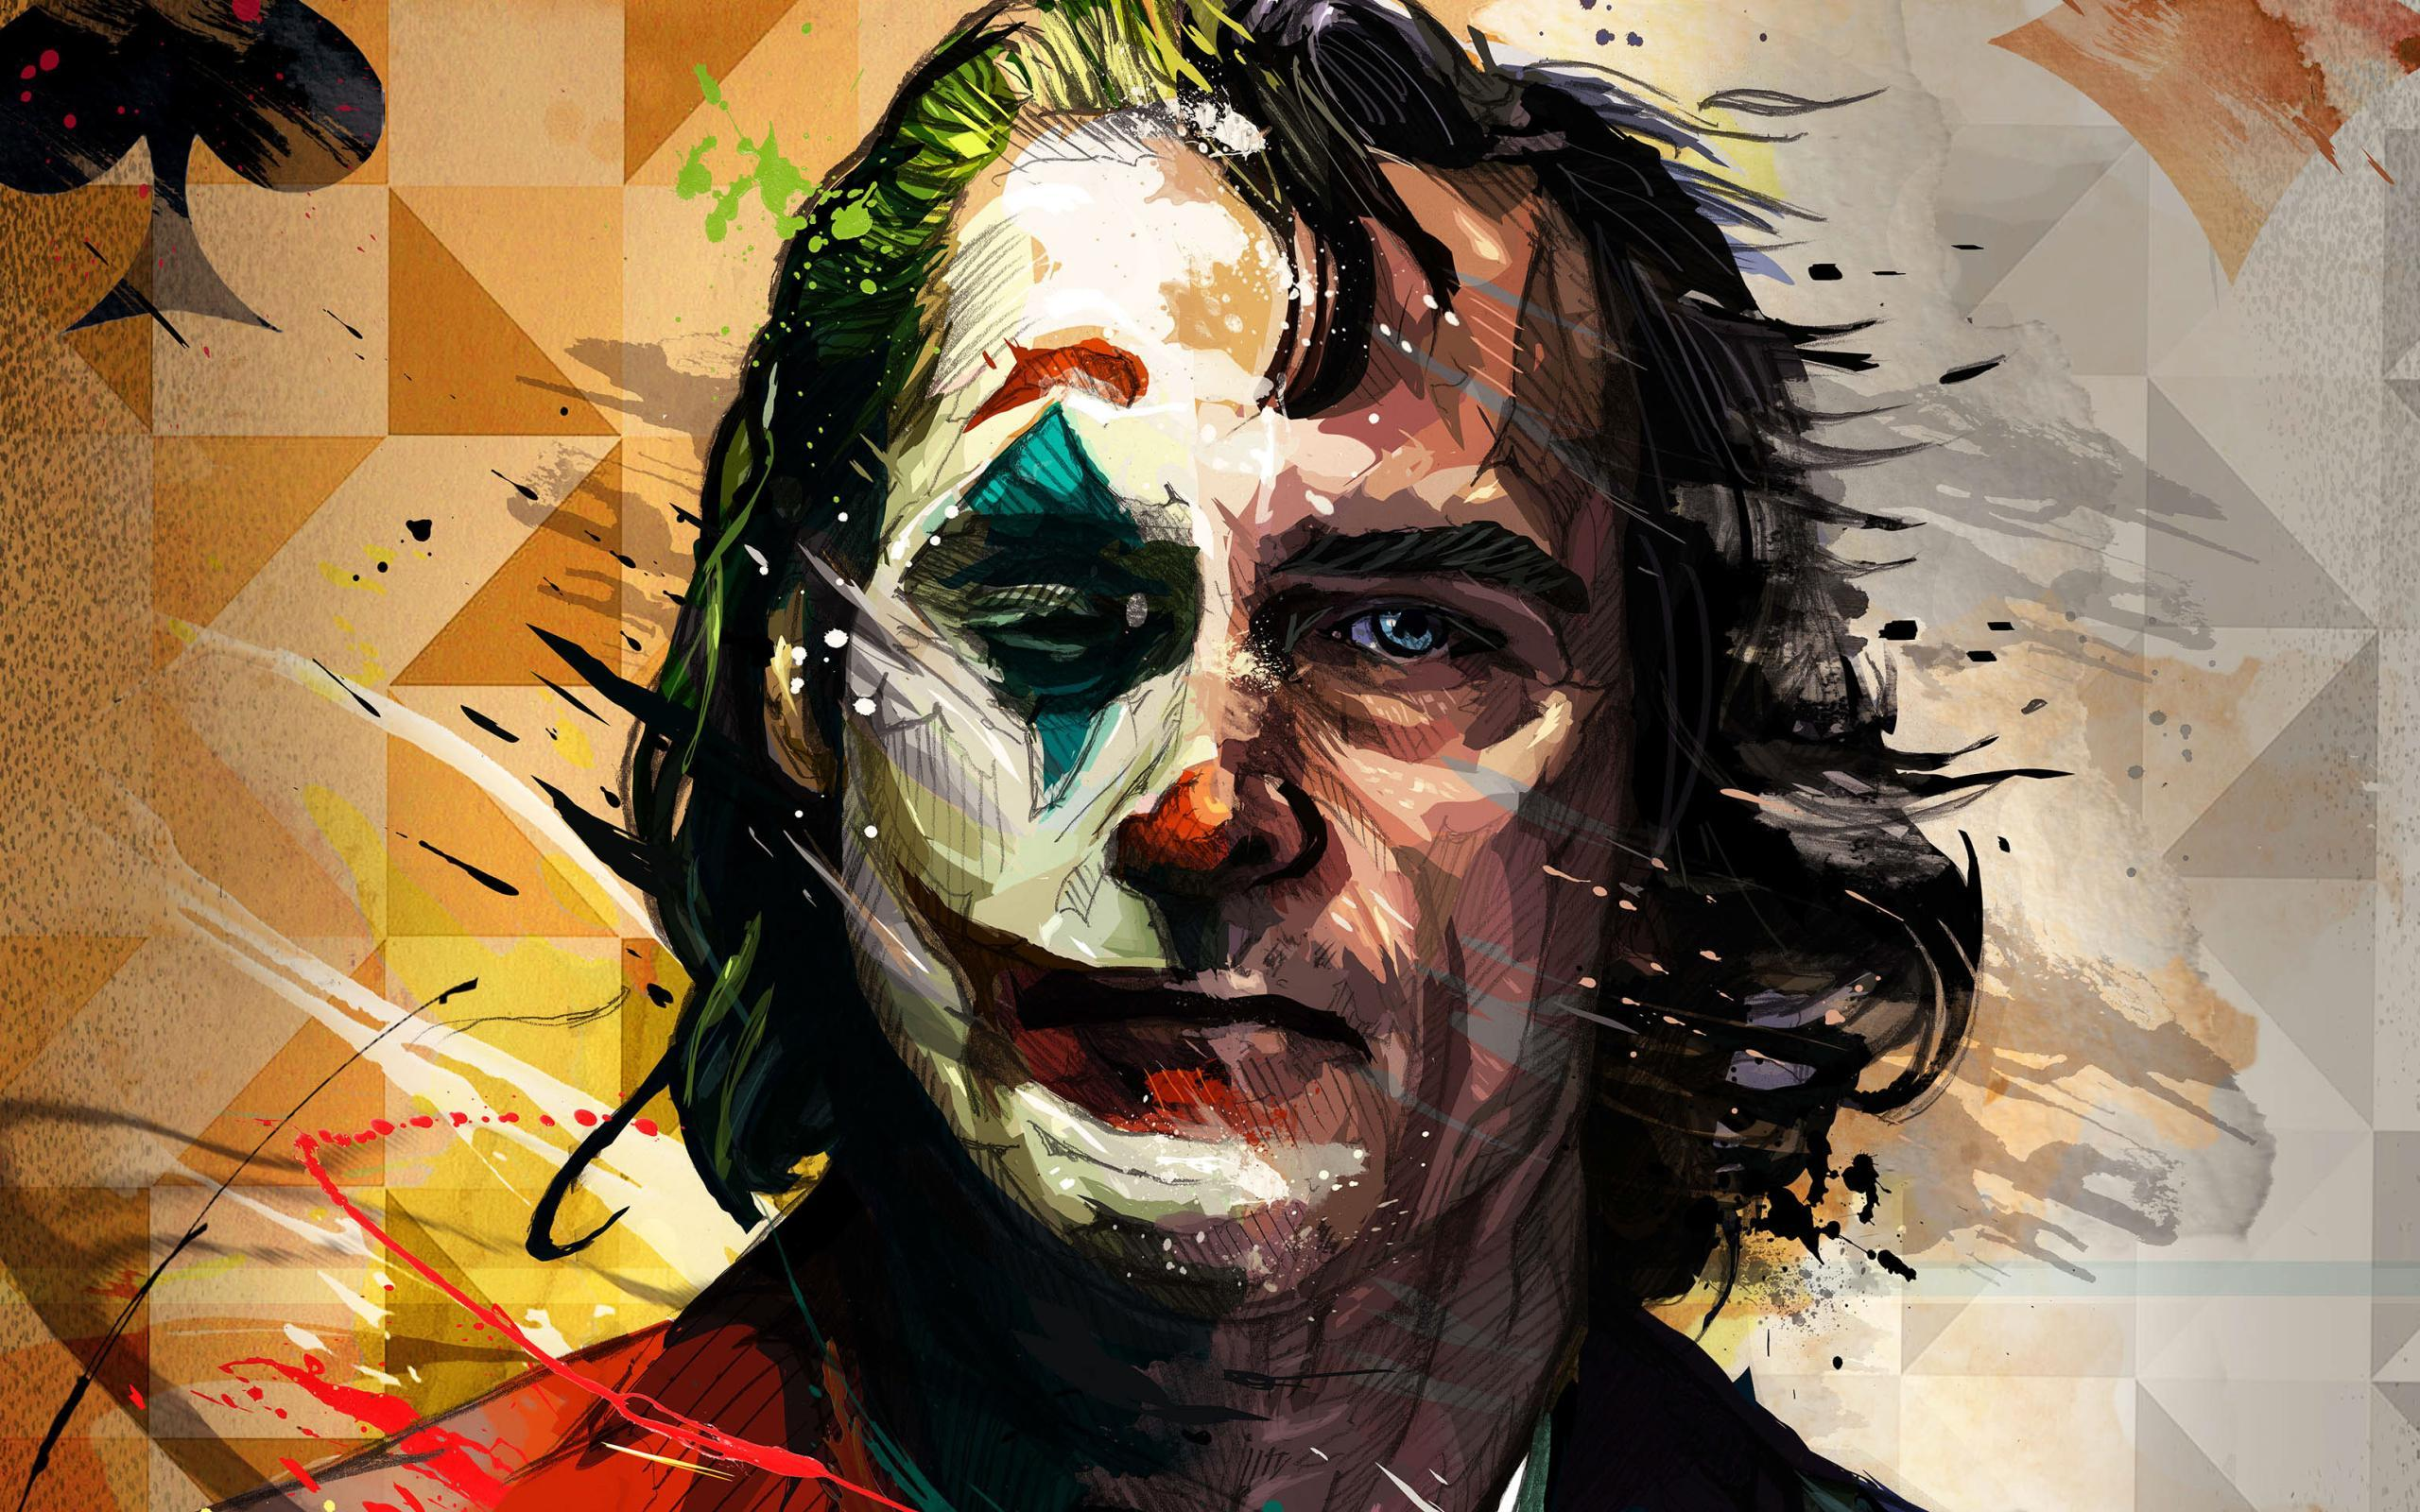 Wallpapers of Movie, Art, DC, Comics, Joaquin Phoenix, Joker